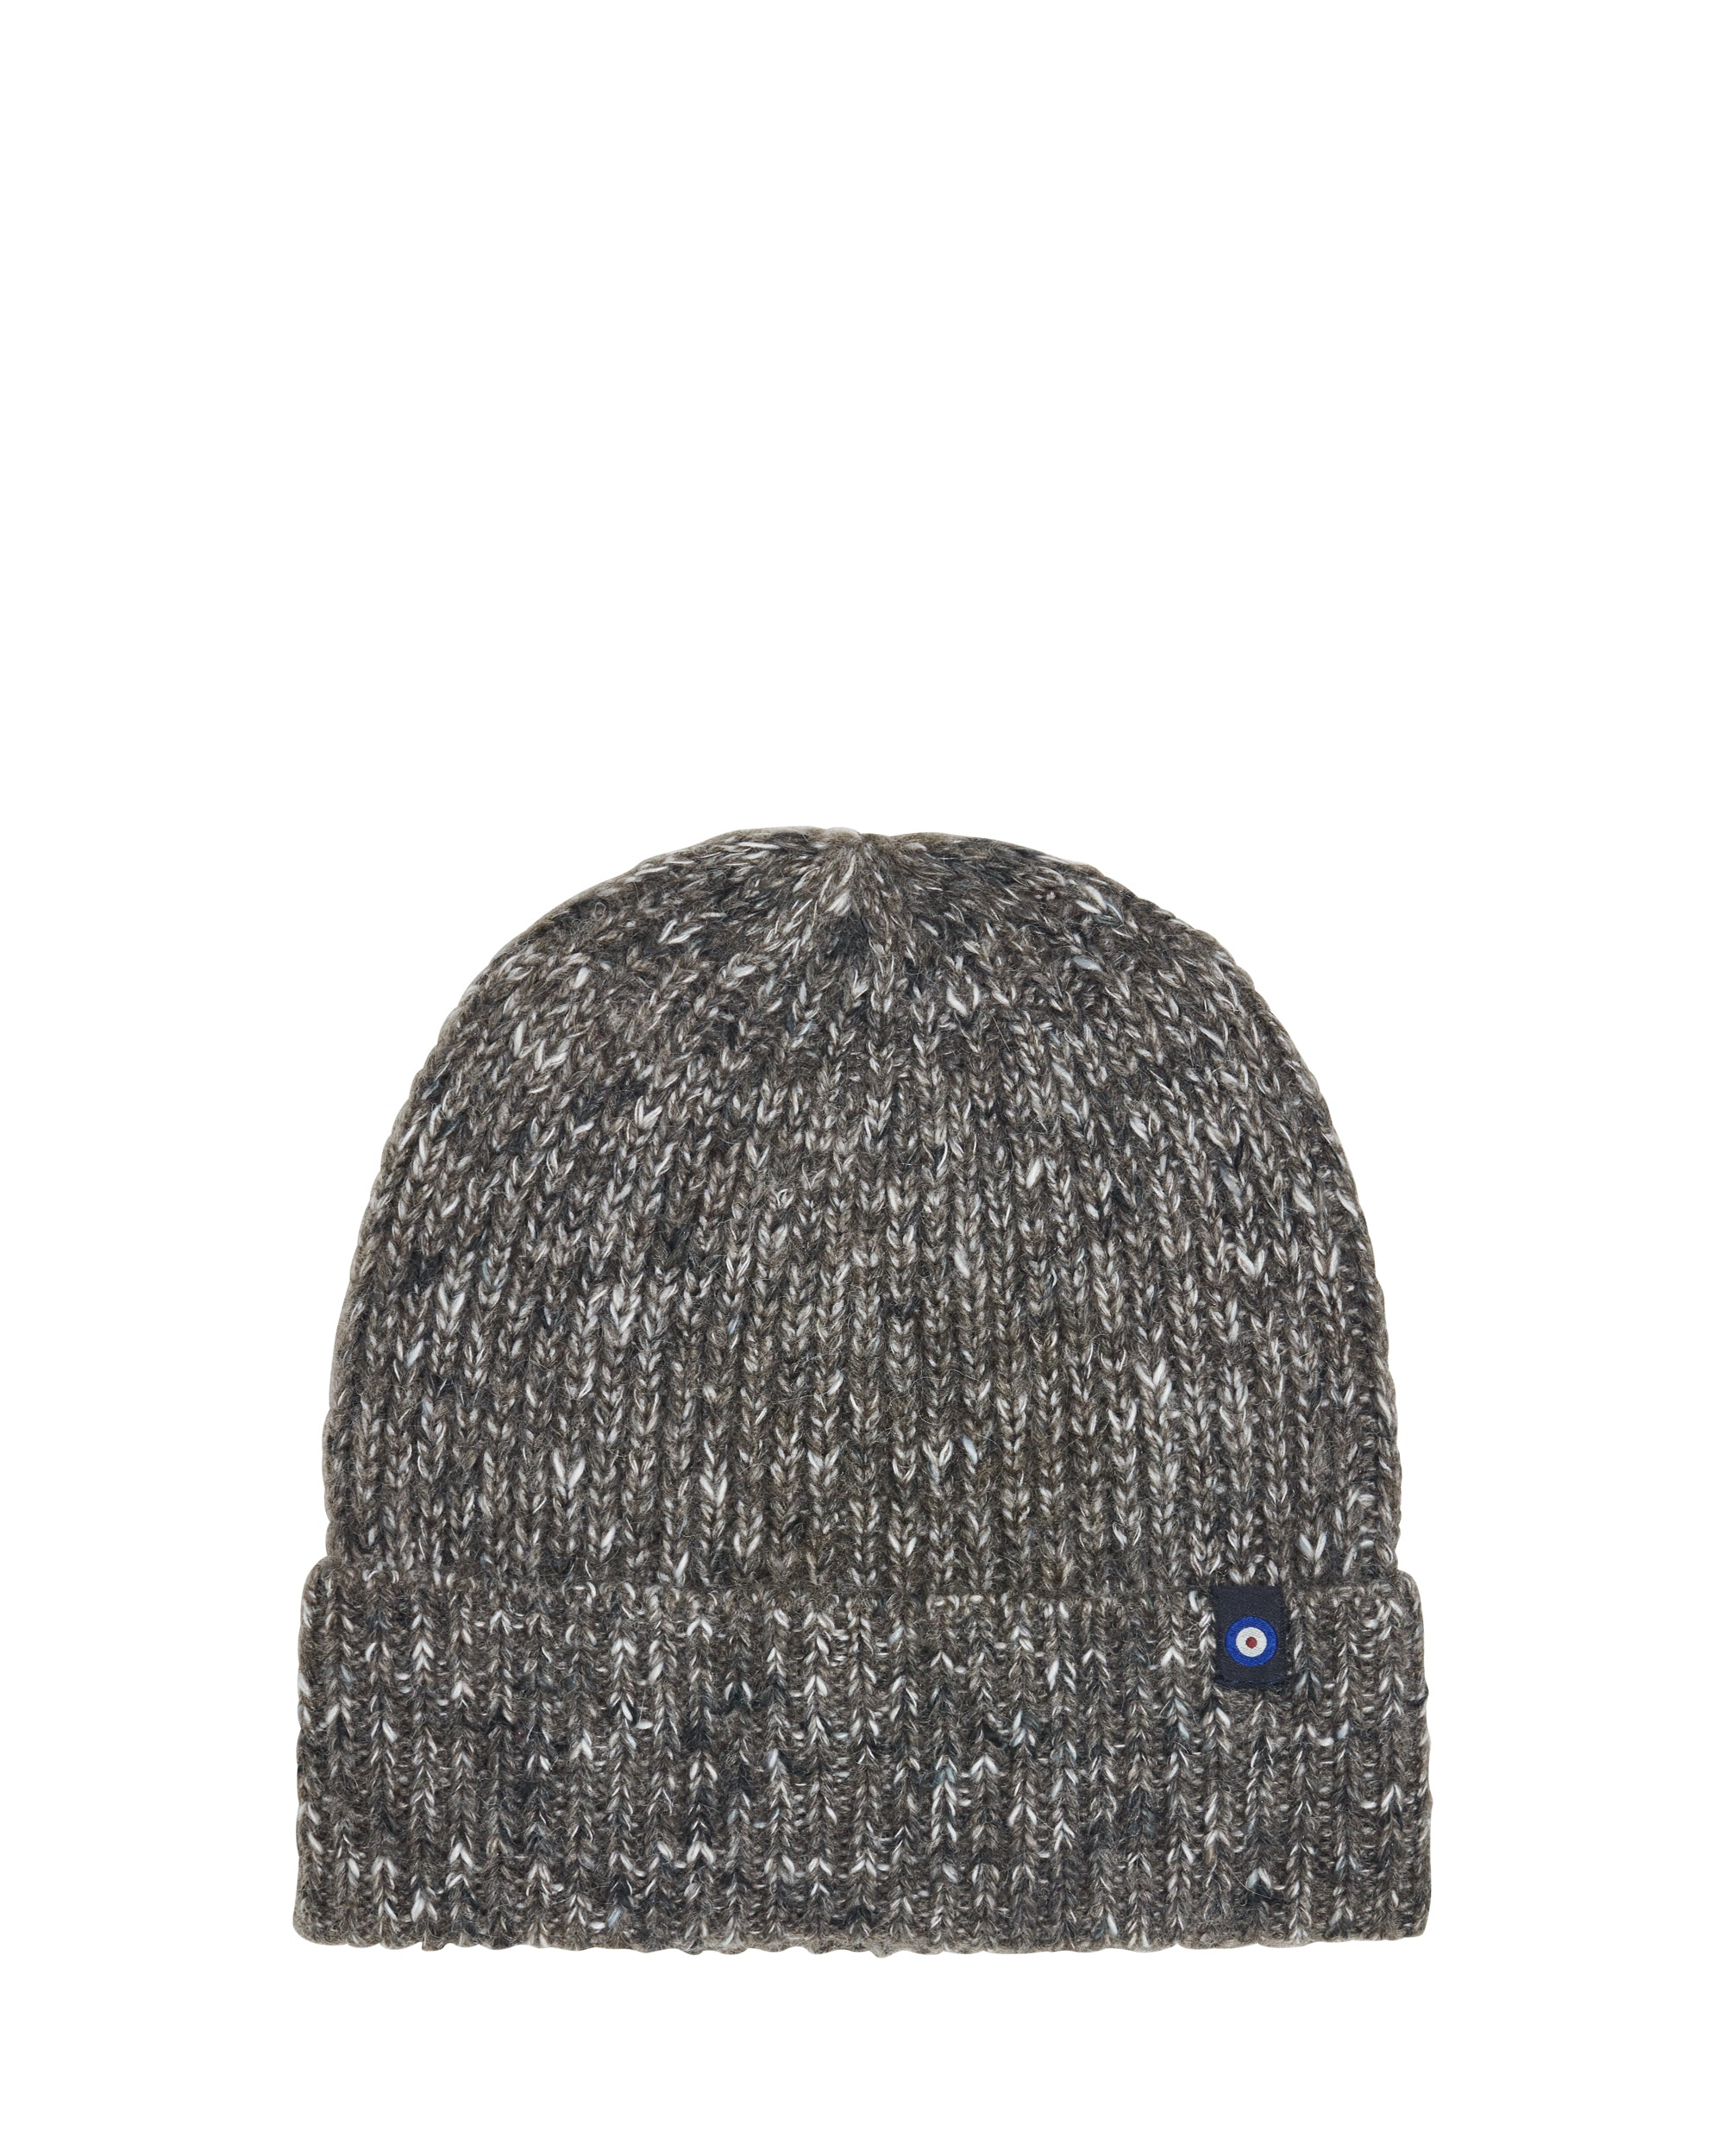 Speckle 1x1 Rib Cuff Toque Beanie Hat - Charcoal